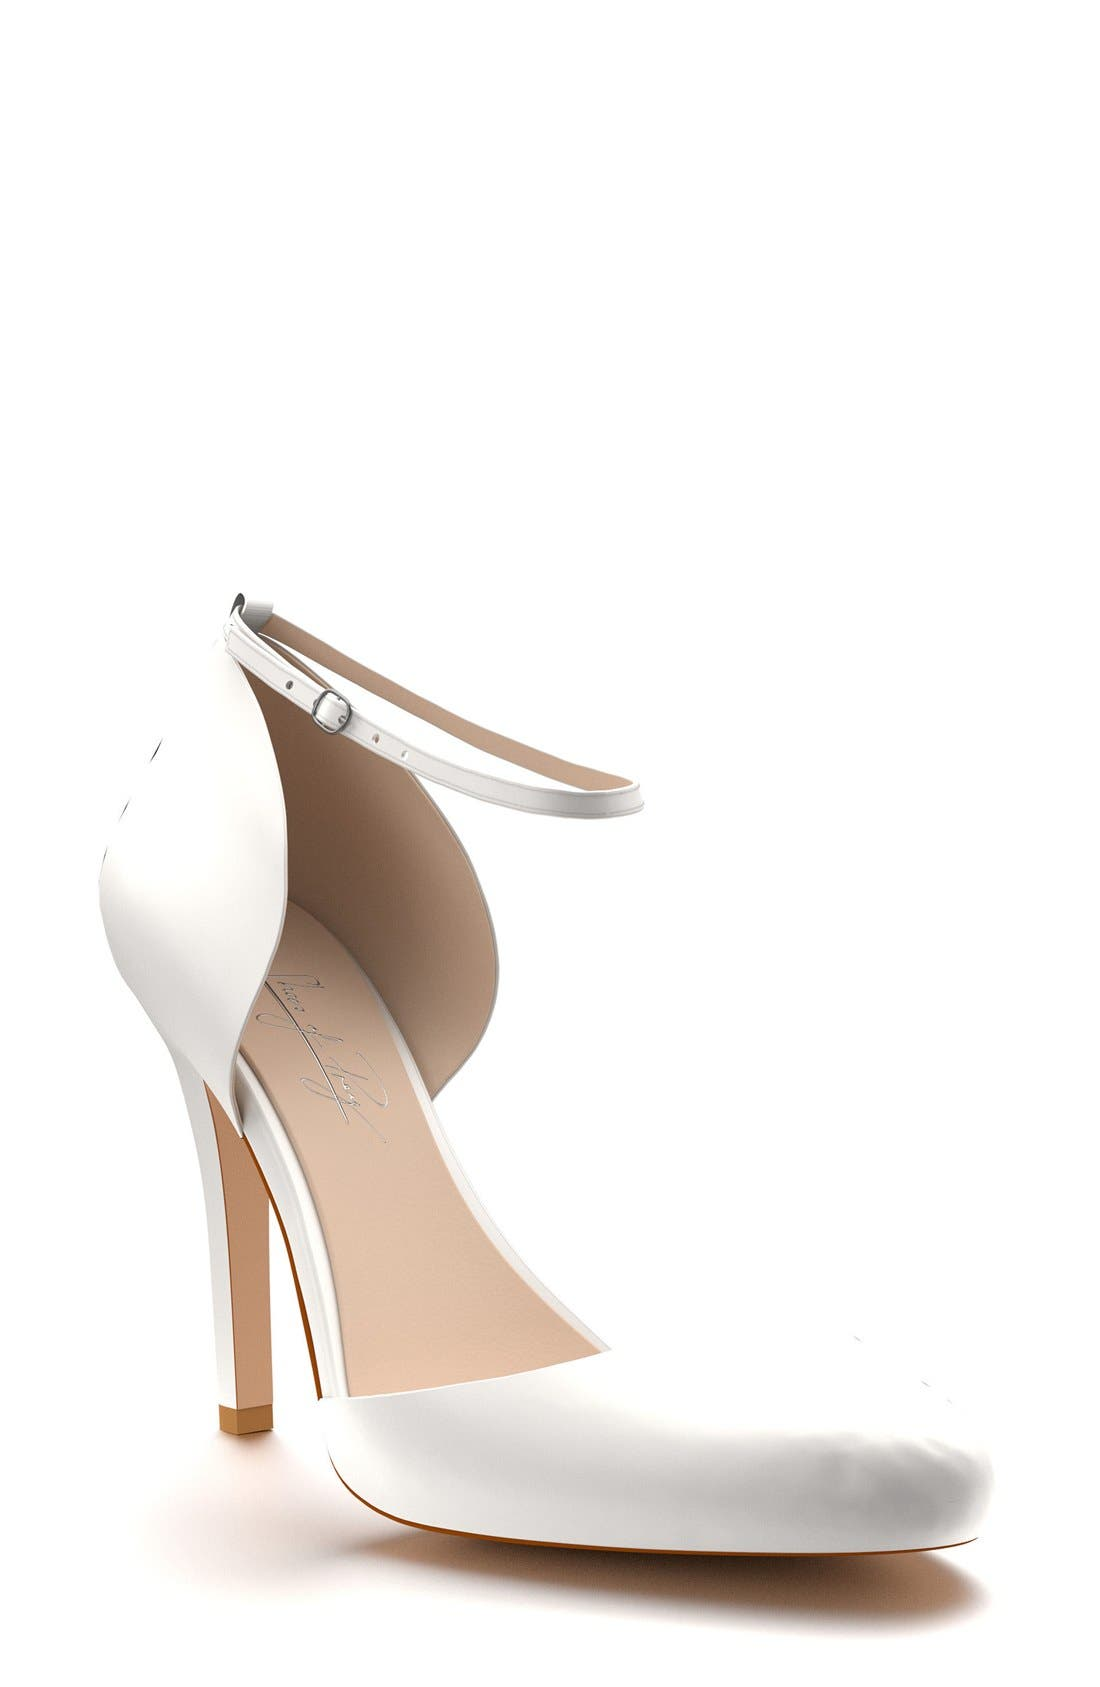 SHOES OF PREY Ankle Strap dOrsay Pump